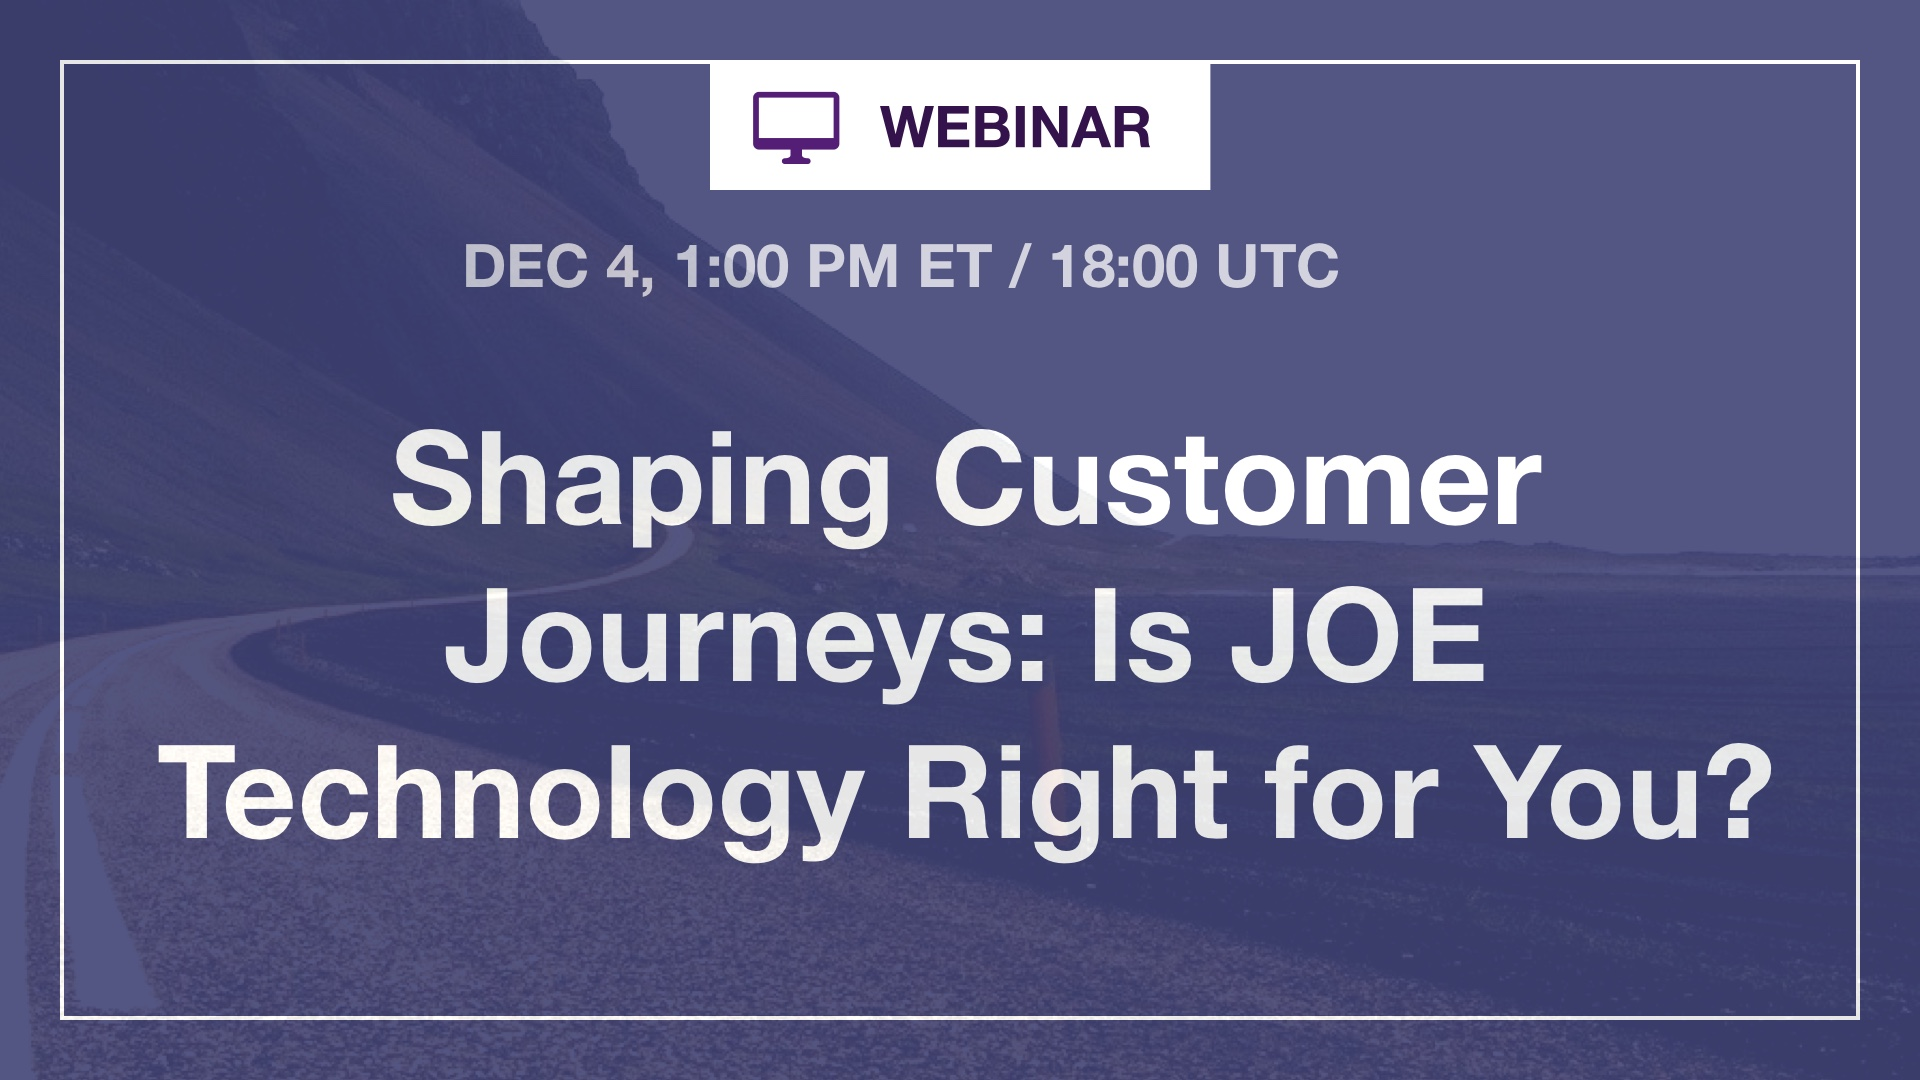 [Webinar] Shaping Customer Journeys: Is JOE Technology Right for You